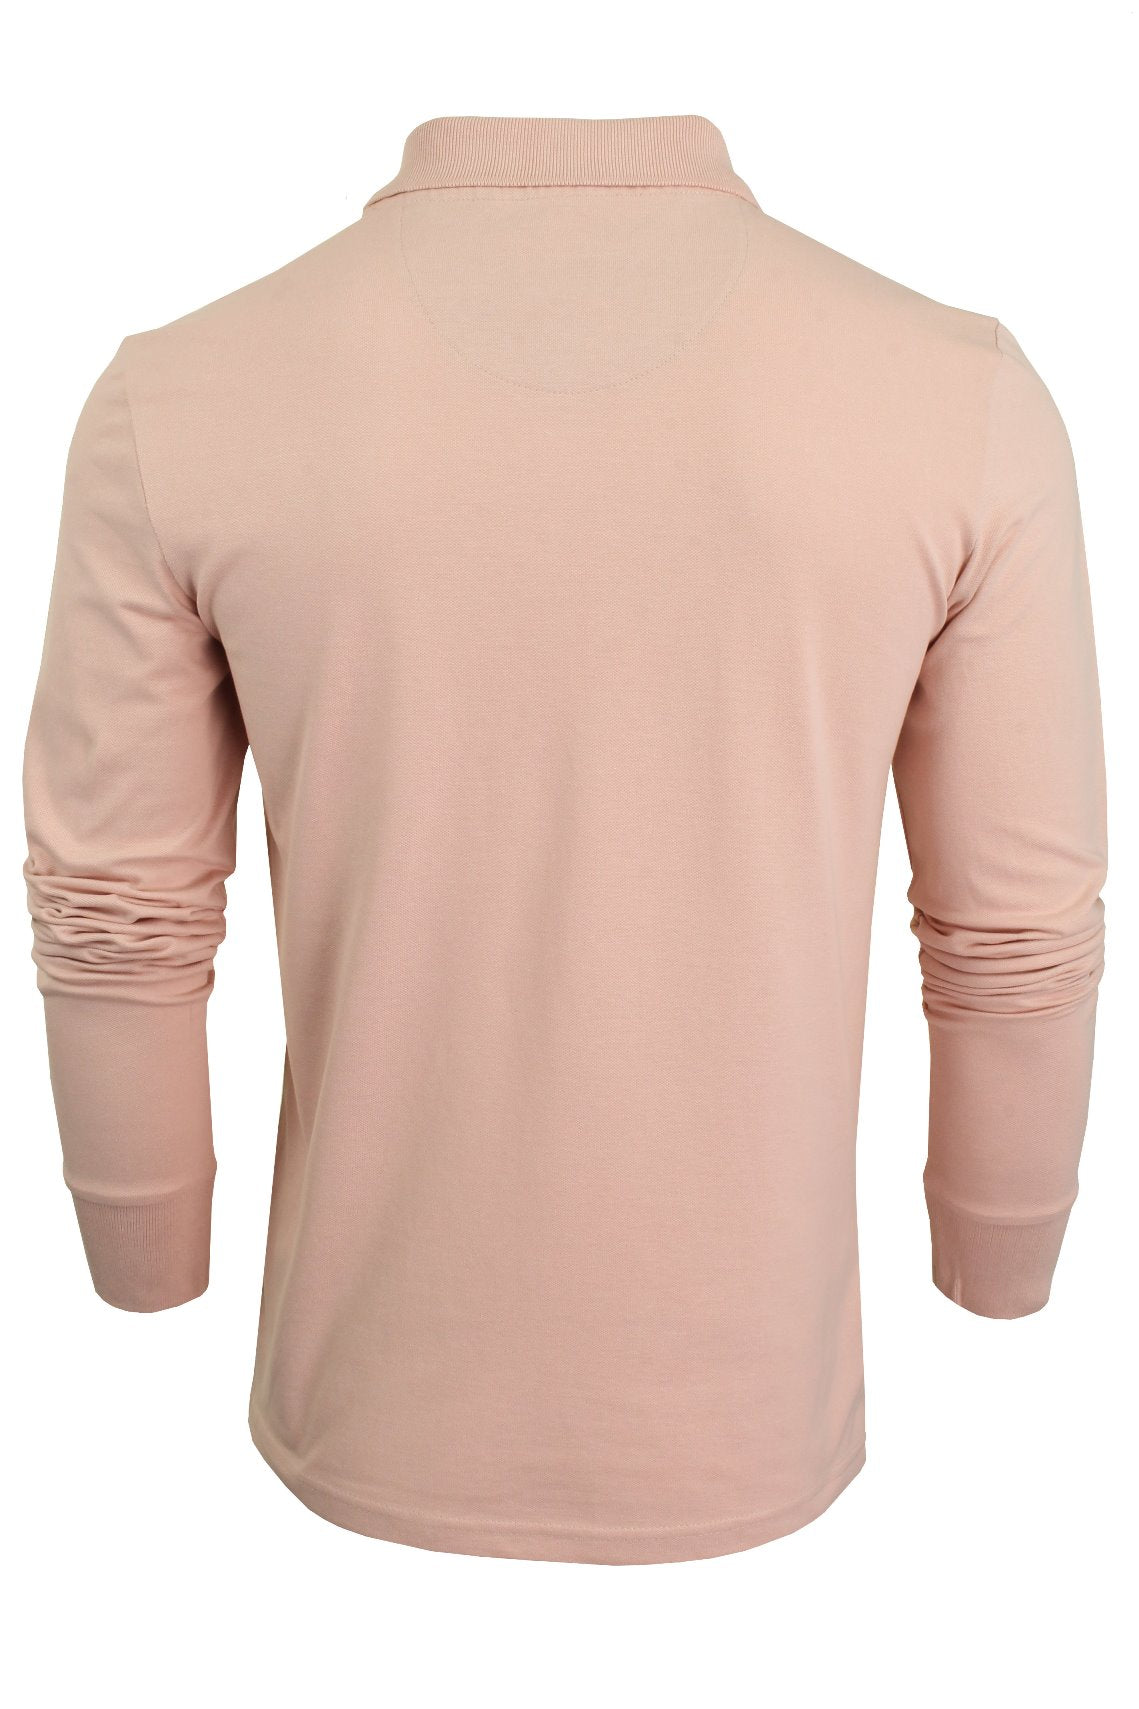 Mens Polo T-Shirt by Xact Pique Long Sleeved_03_XP1003_Summer Pink